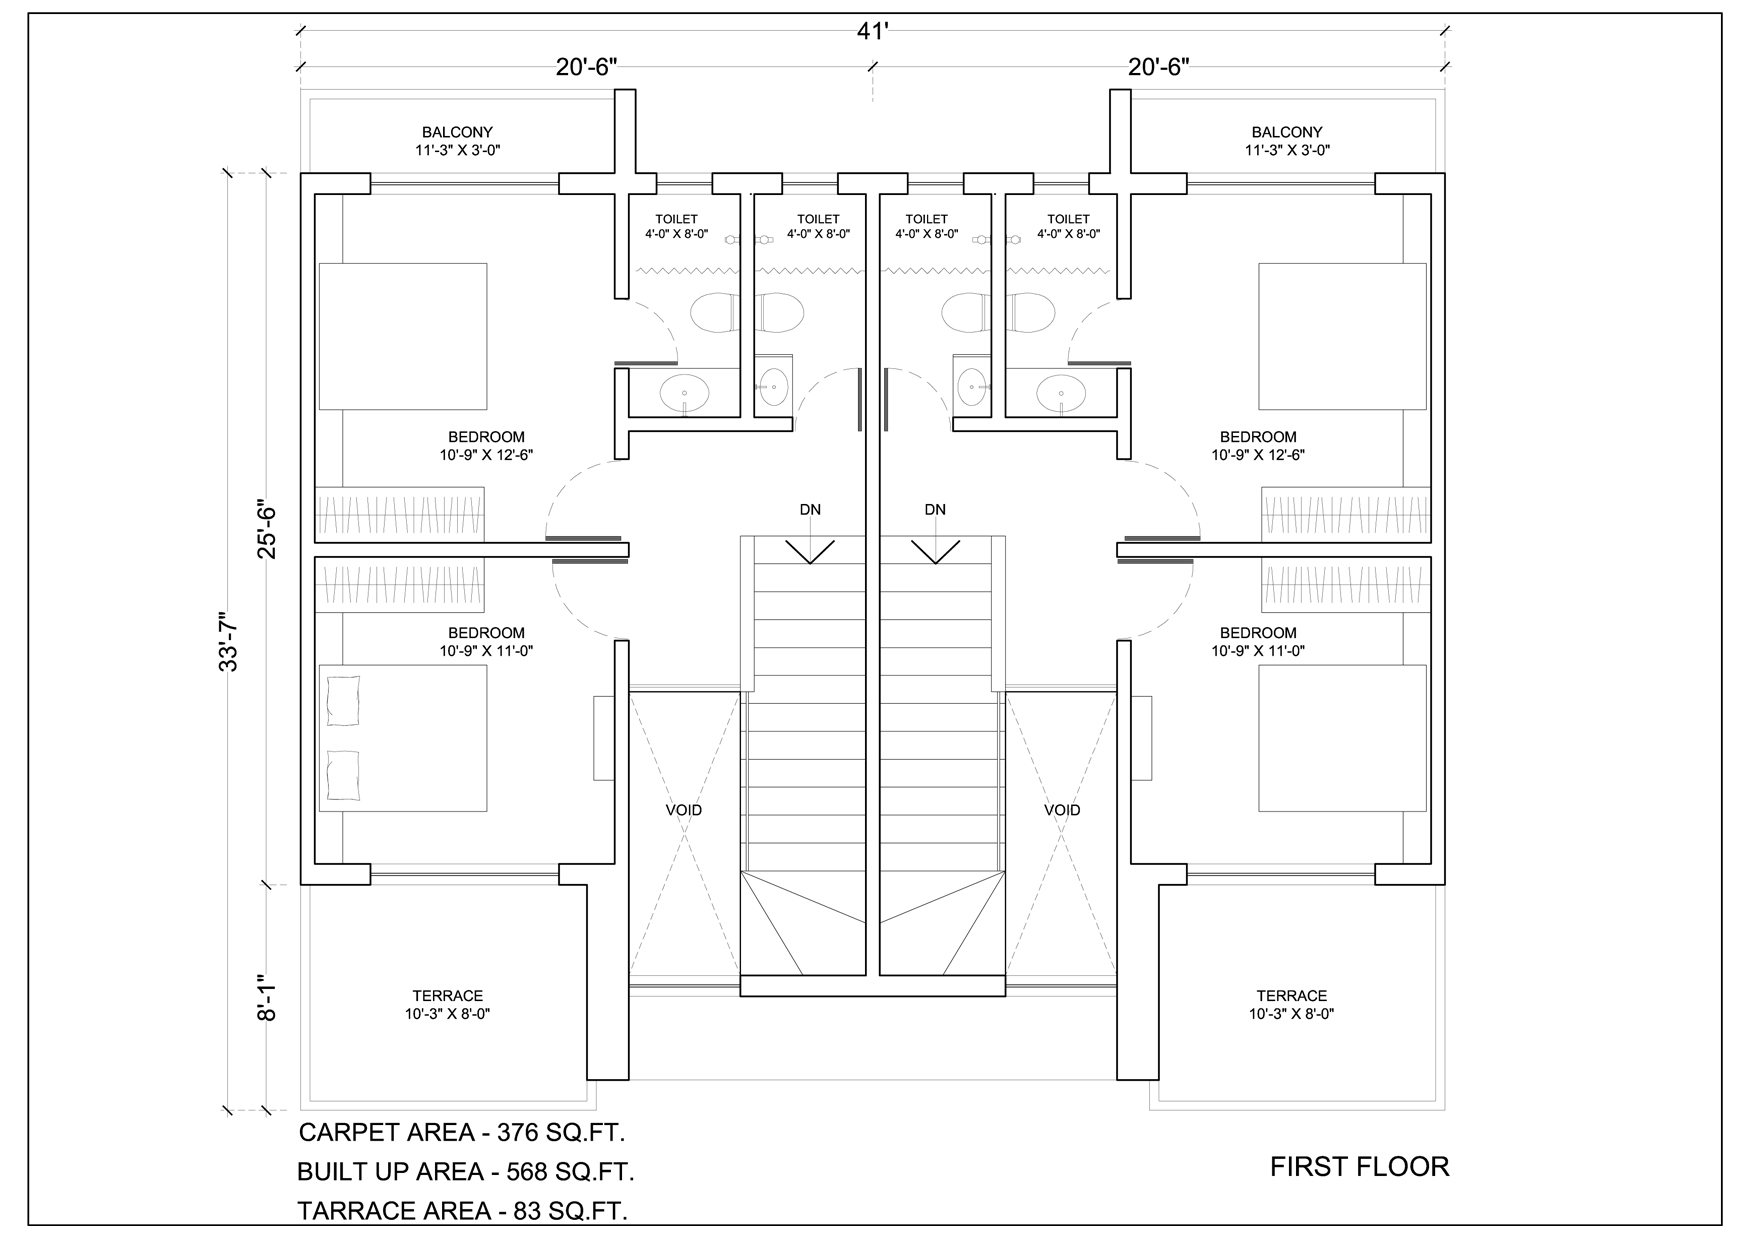 Kalpak Developers Row House Floor Plans